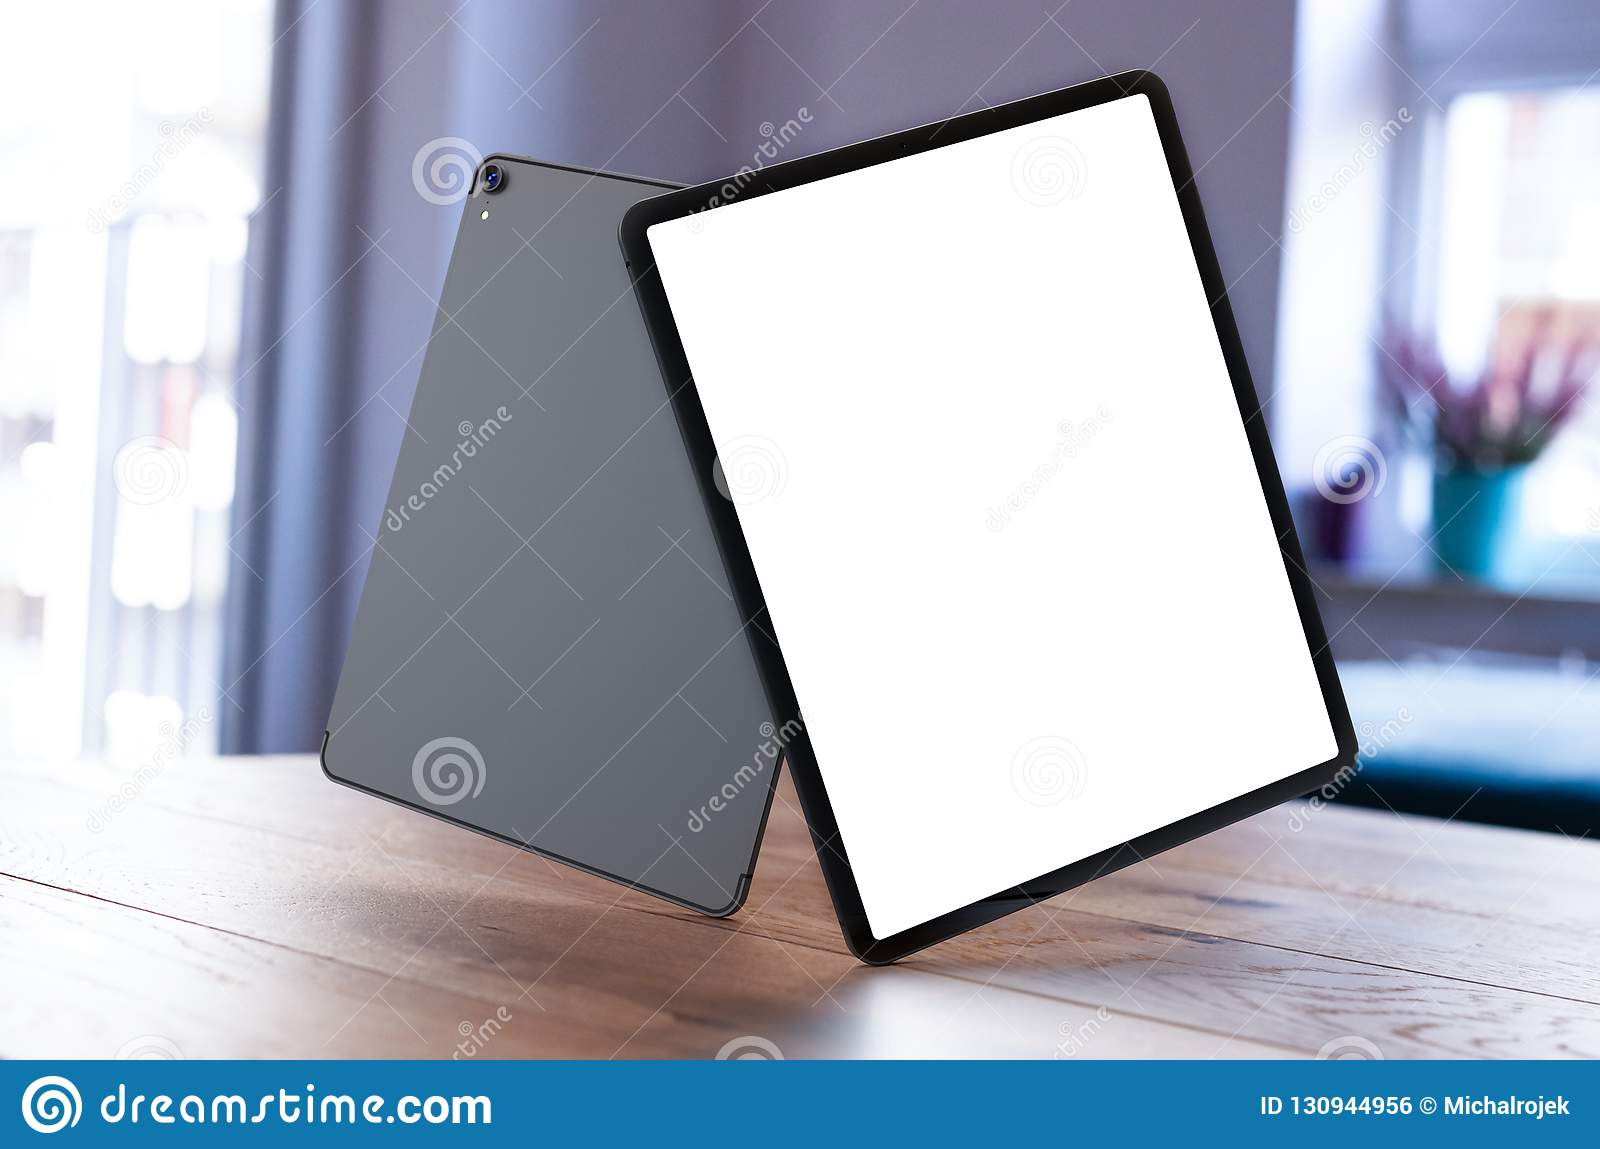 IPad Pro 2018 with blank screen